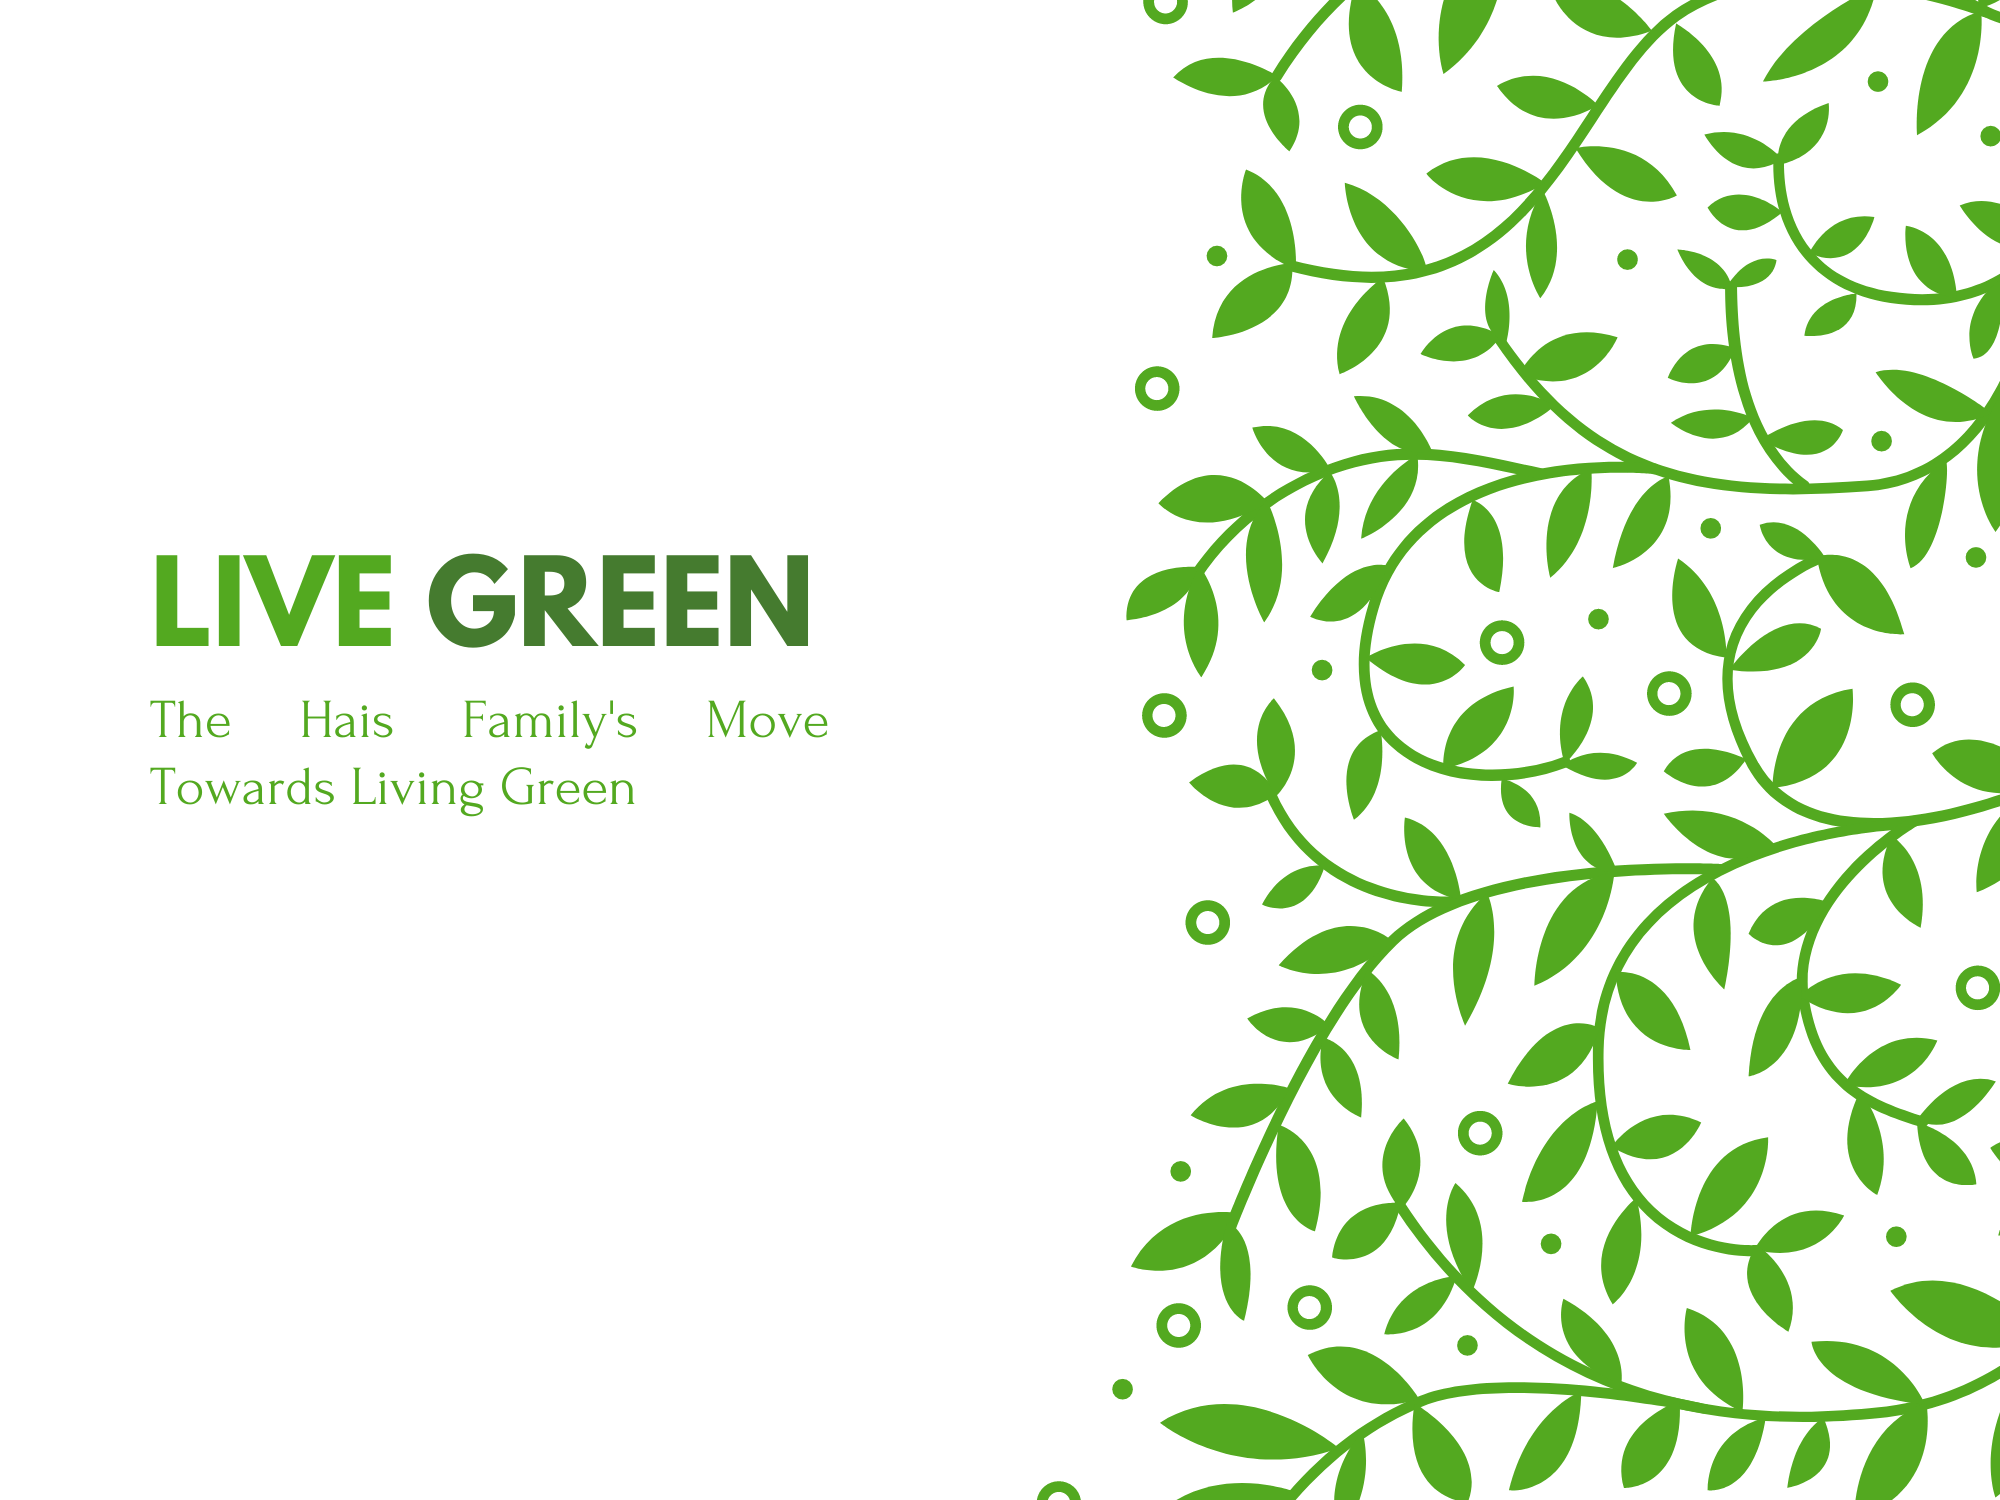 The Hais Family's Move to Living Green Thumbnail